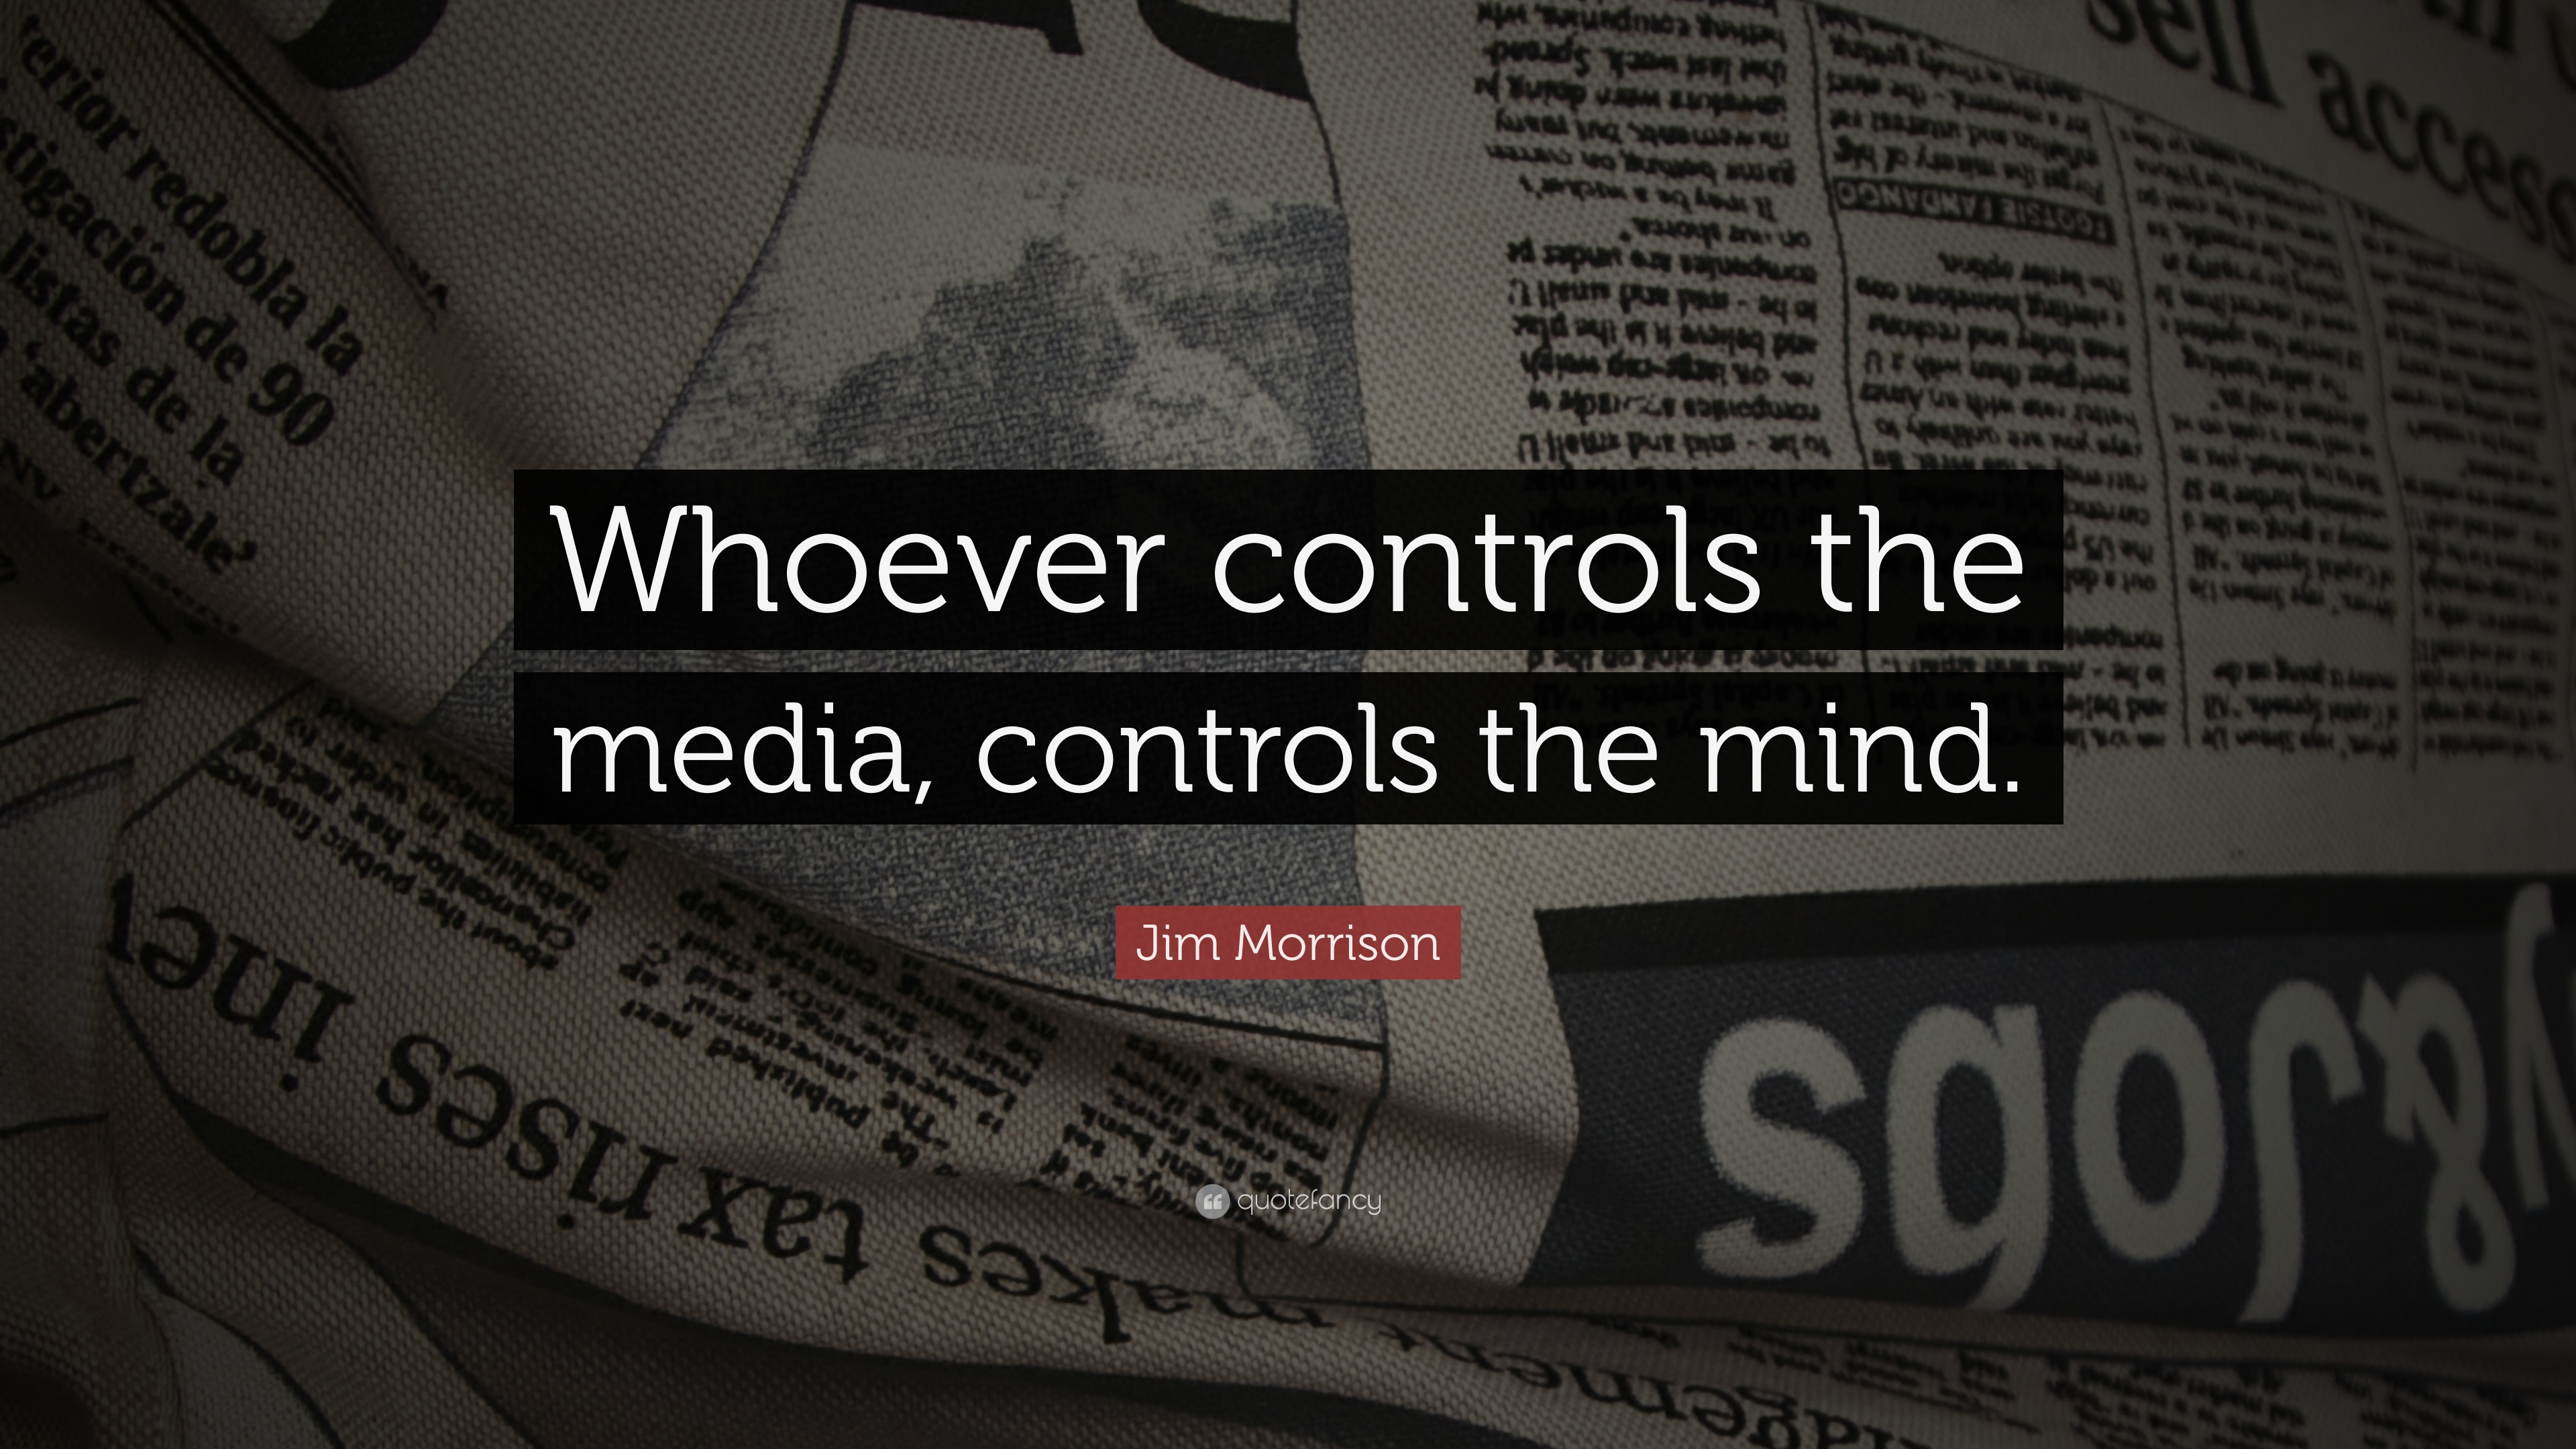 Theodore Roosevelt Wallpaper Quote Jim Morrison Quote Whoever Controls The Media Controls